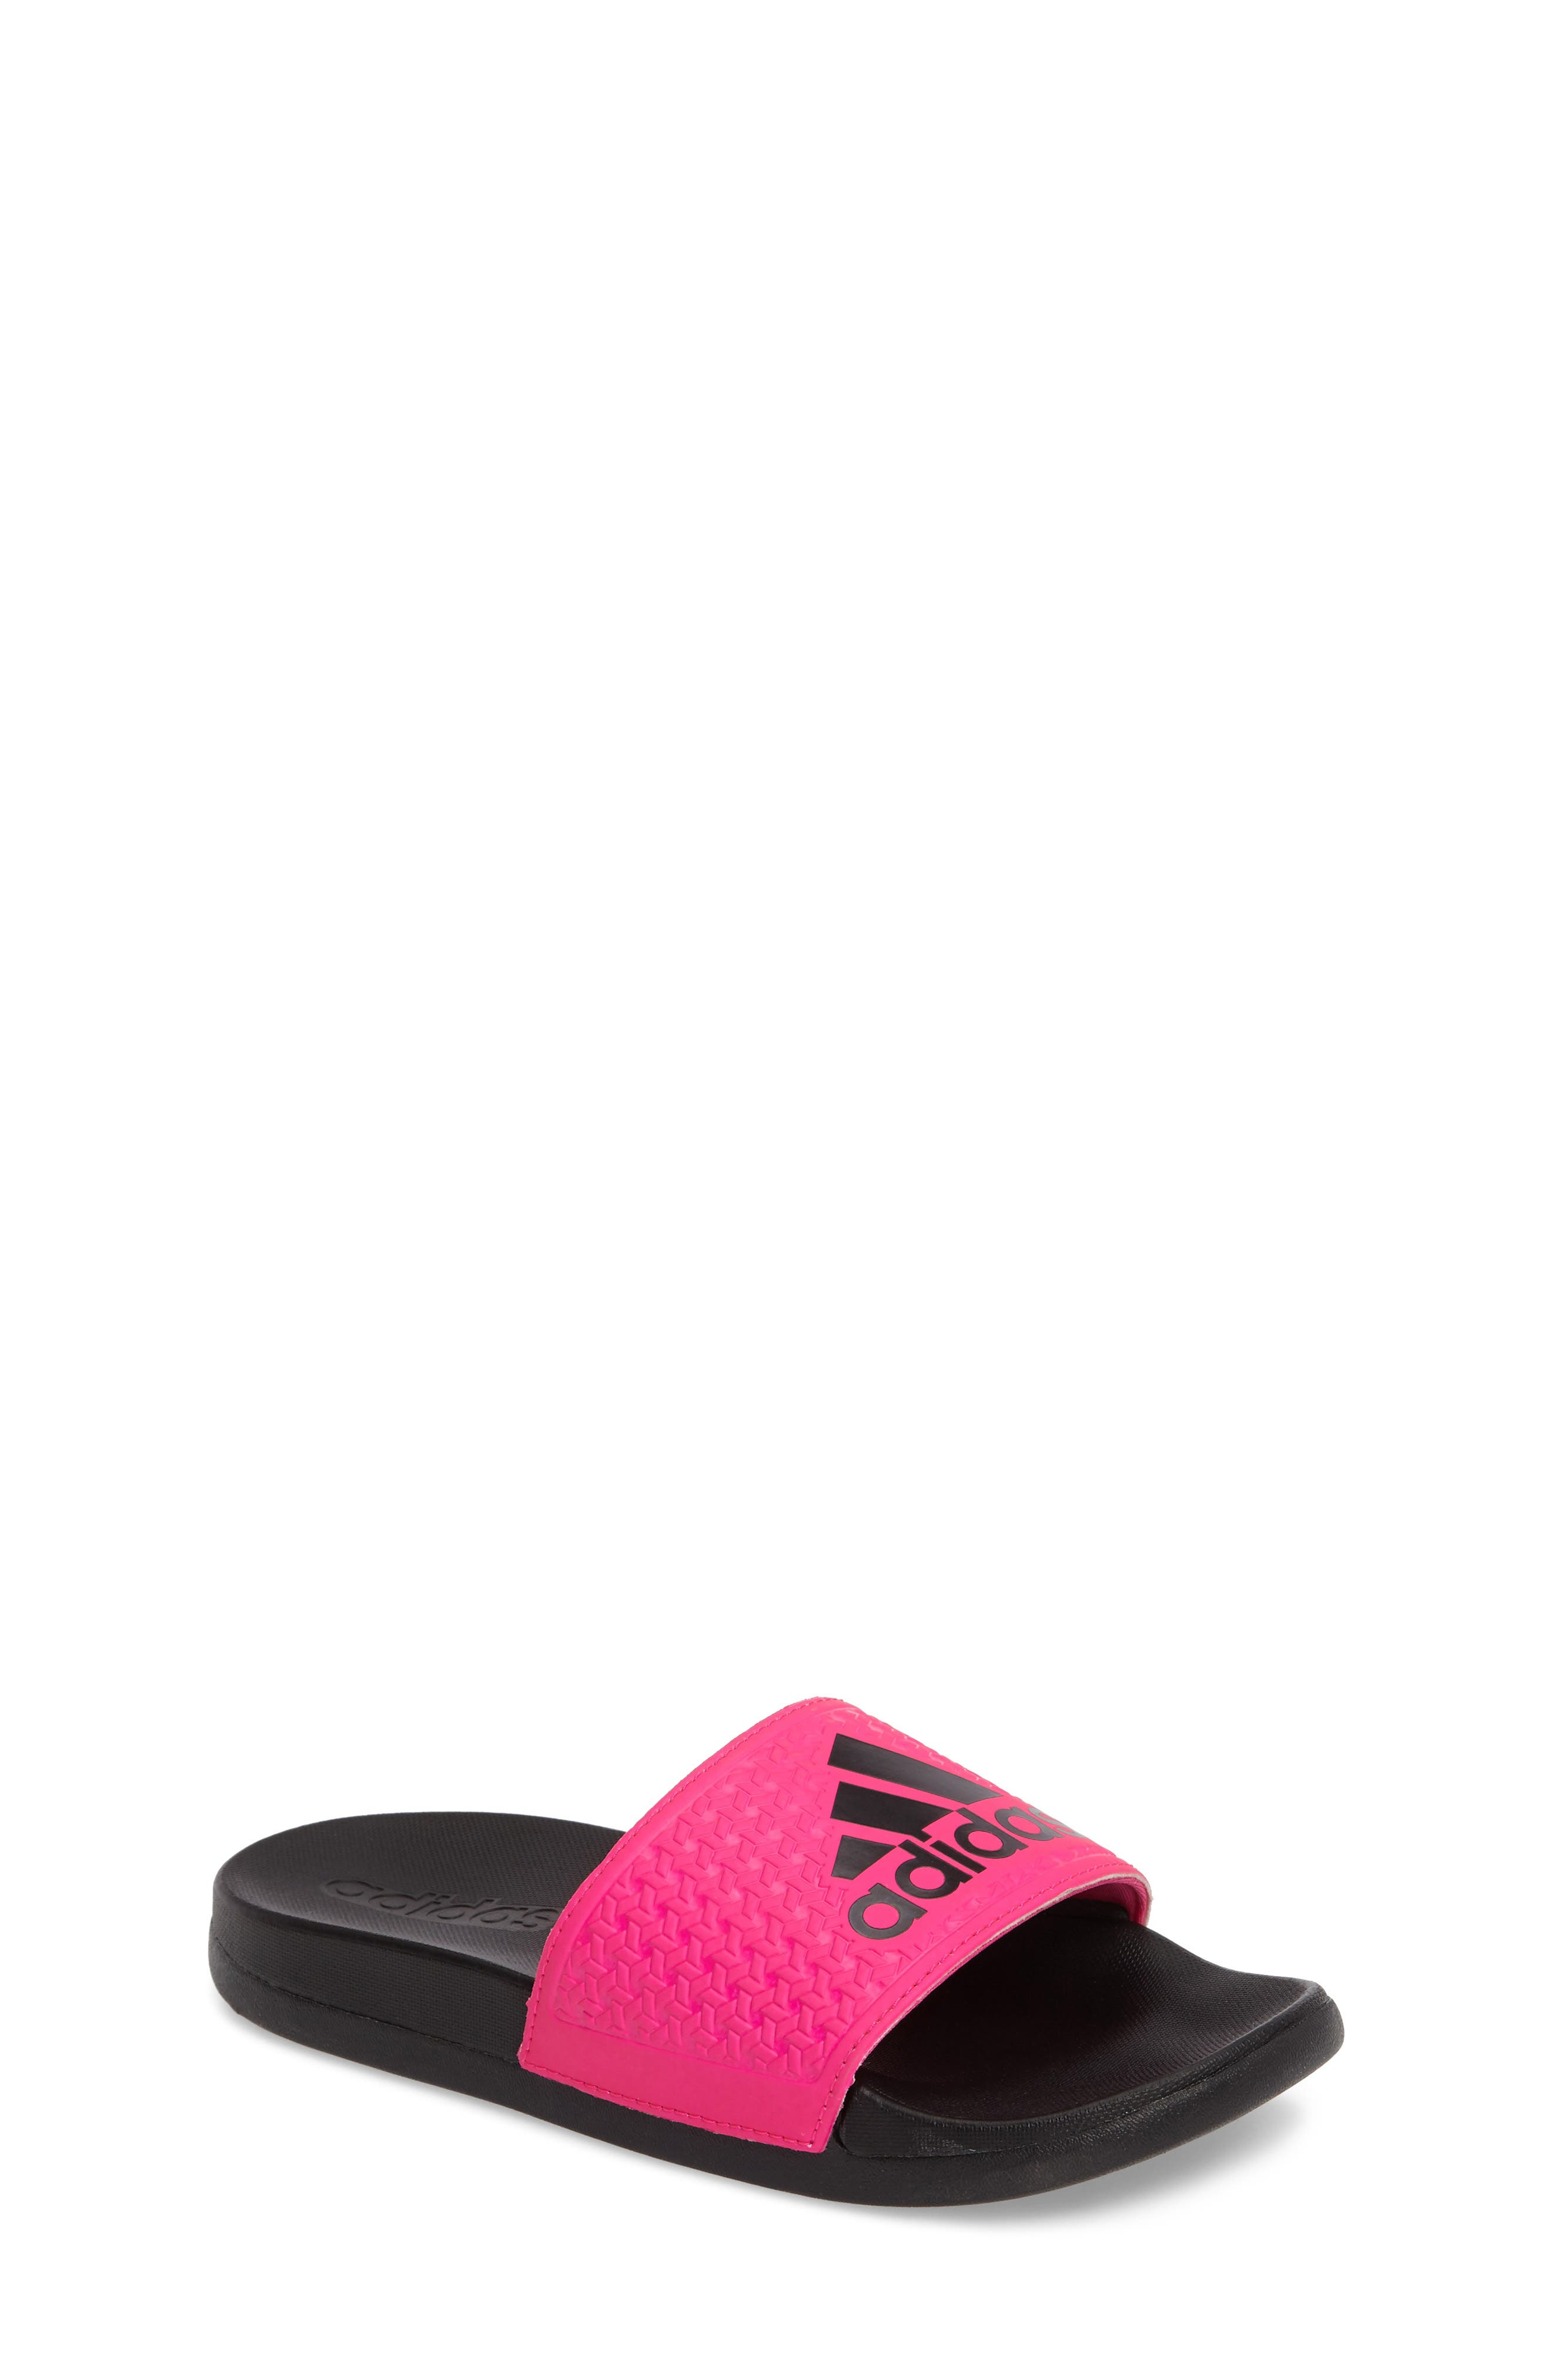 adidas Adilette Slide Sandal (Toddler, Little Kid & Big Kid)